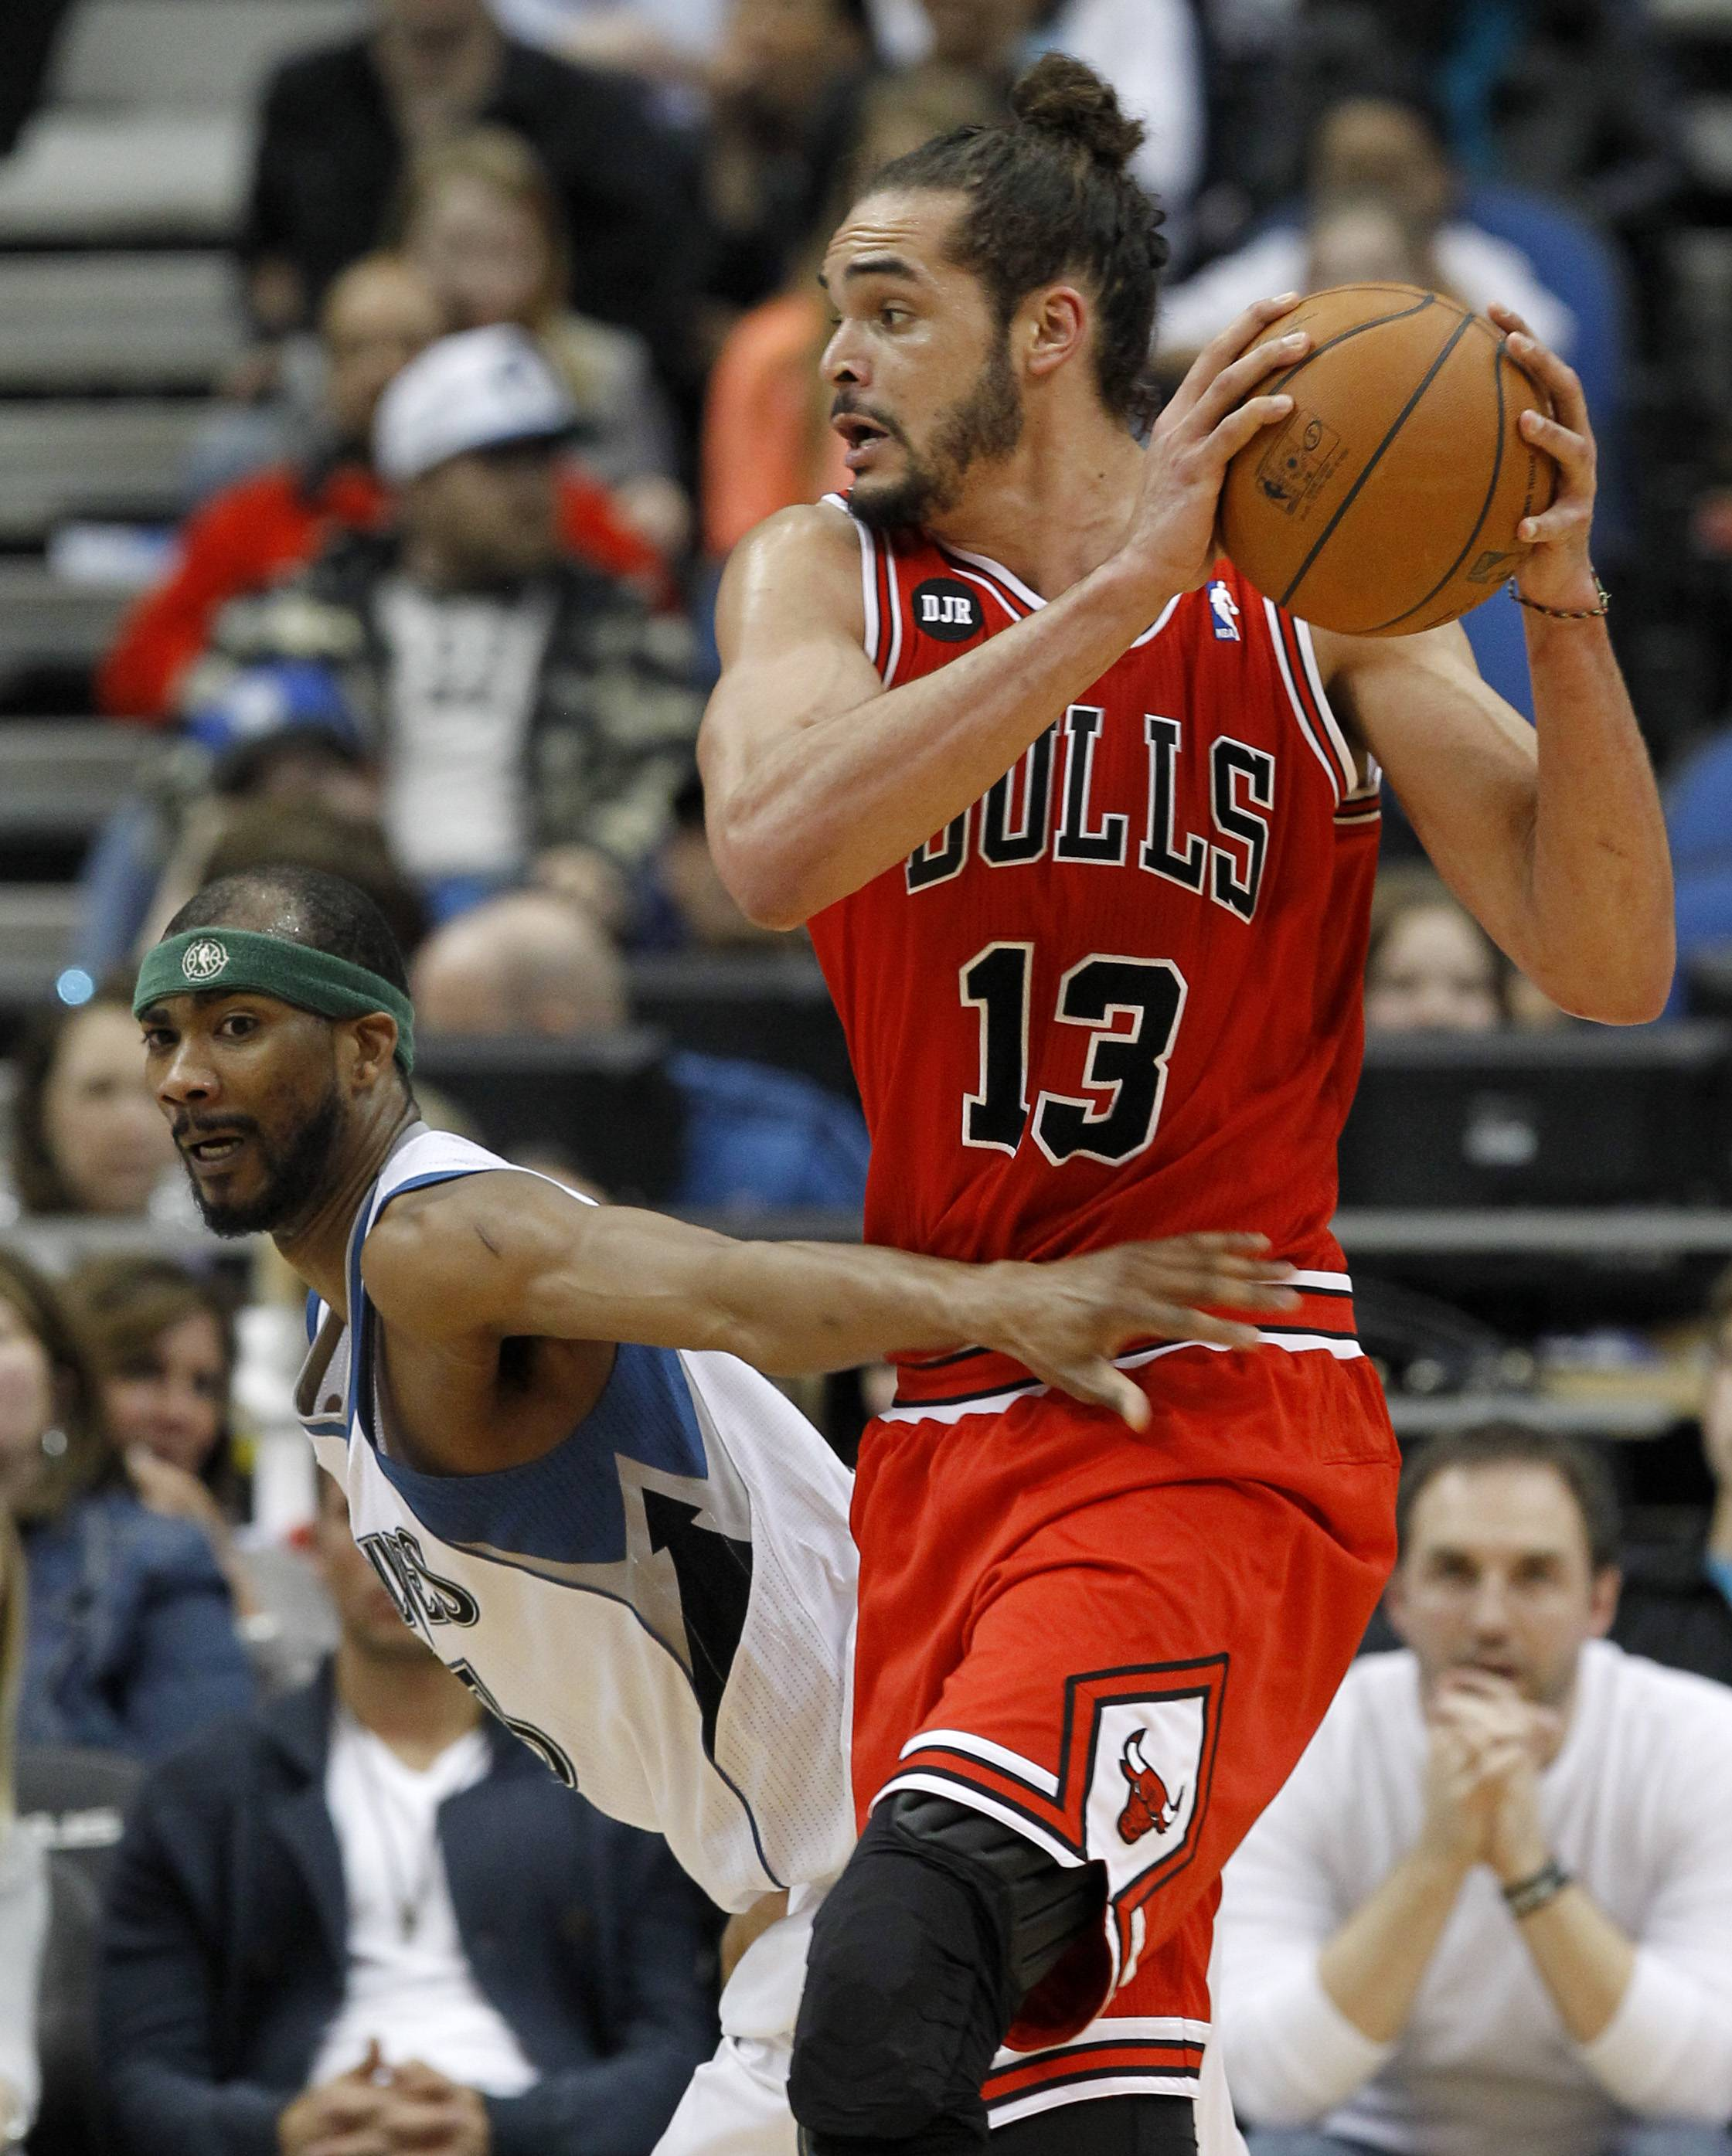 Chicago Bulls center Joakim Noah (13) wrestles the ball away from Minnesota Timberwolves forward Corey Brewer during the fourth quarter of an NBA basketball game in Minneapolis, Wednesday, April 9, 2014. The Bulls won 102-87. (AP Photo/Ann Heisenfelt)